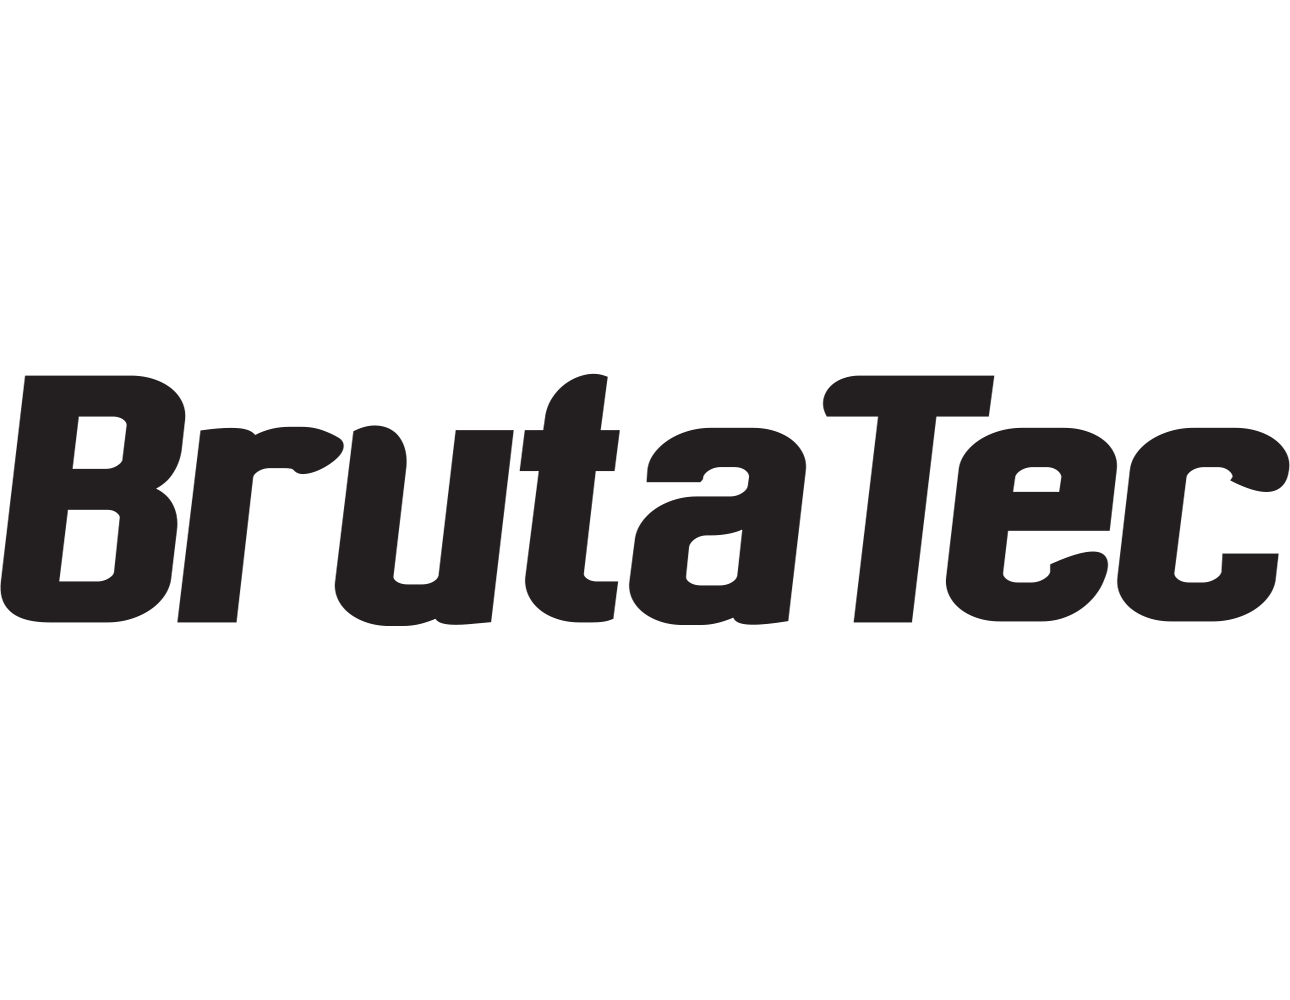 Brutatec - Multivisi